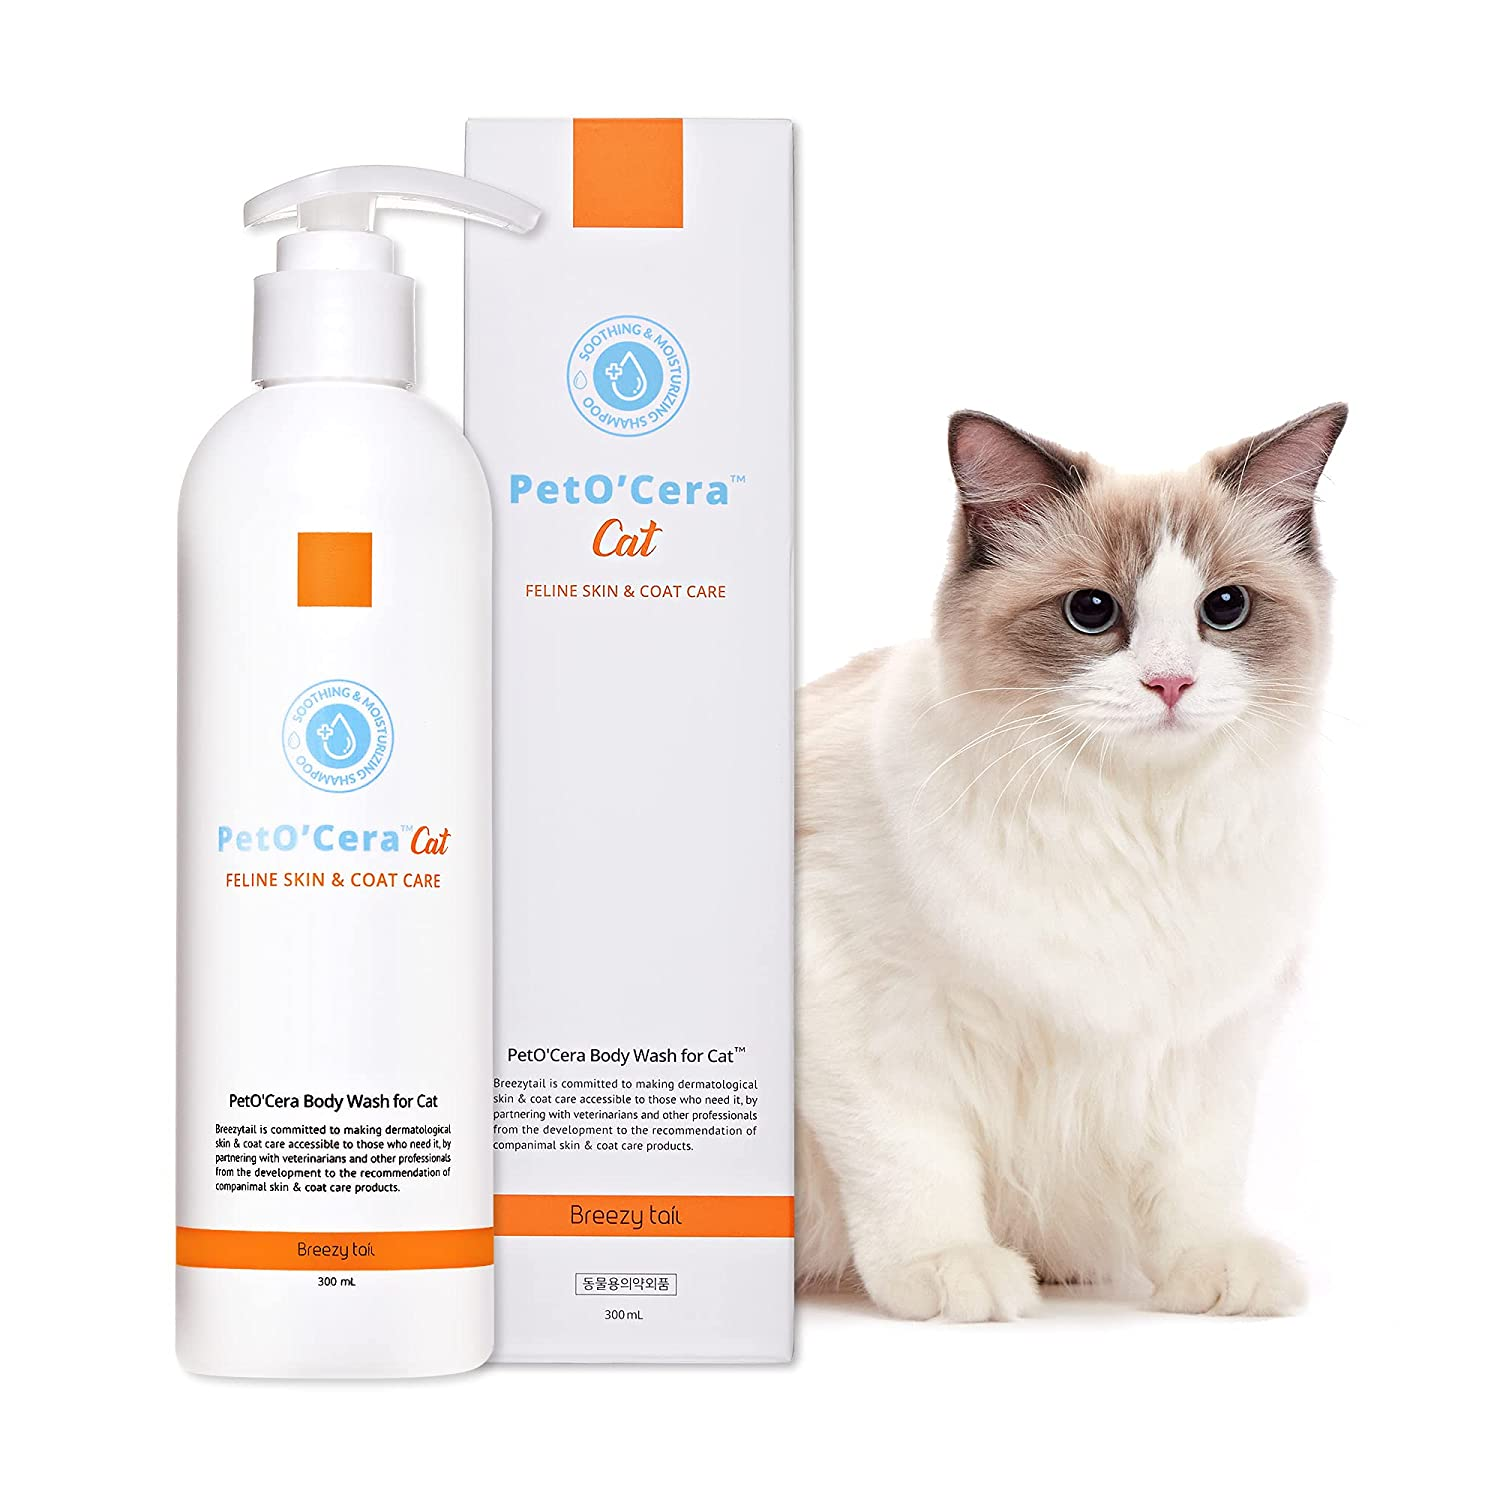 Breezytail PetO'Cera Cat Shampoo   Body Wash for Cat Bath - Hypoallergenic Feline Skincare Shampoo   Skin, Coat & Fur Care Shampoo for Cats   Veterinarian Approved and Formulated Shampoo for Cats : Pet Supplies